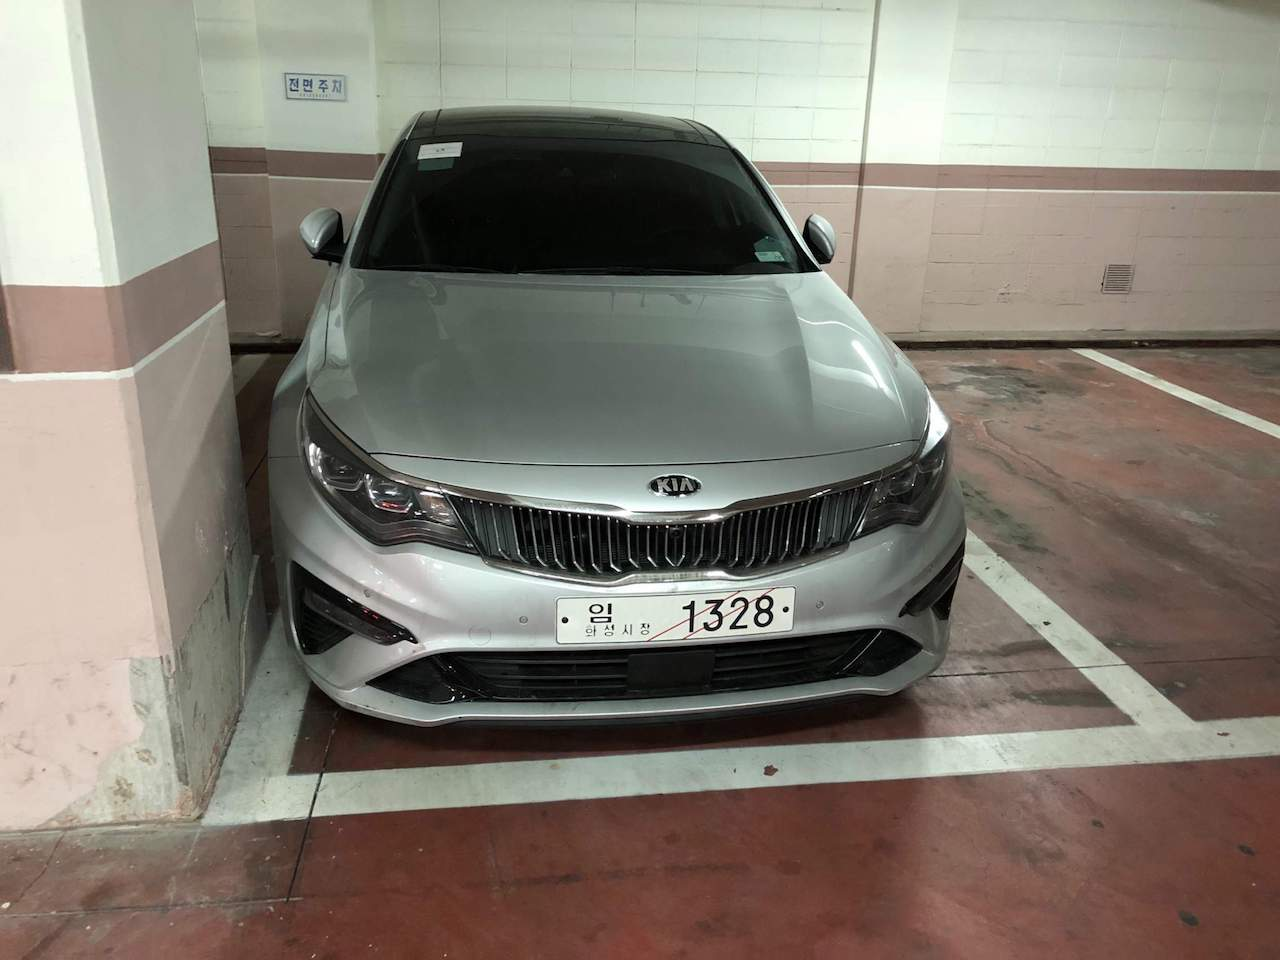 2019 Kia Optima (2018 Kia K5) facelift front spy shot